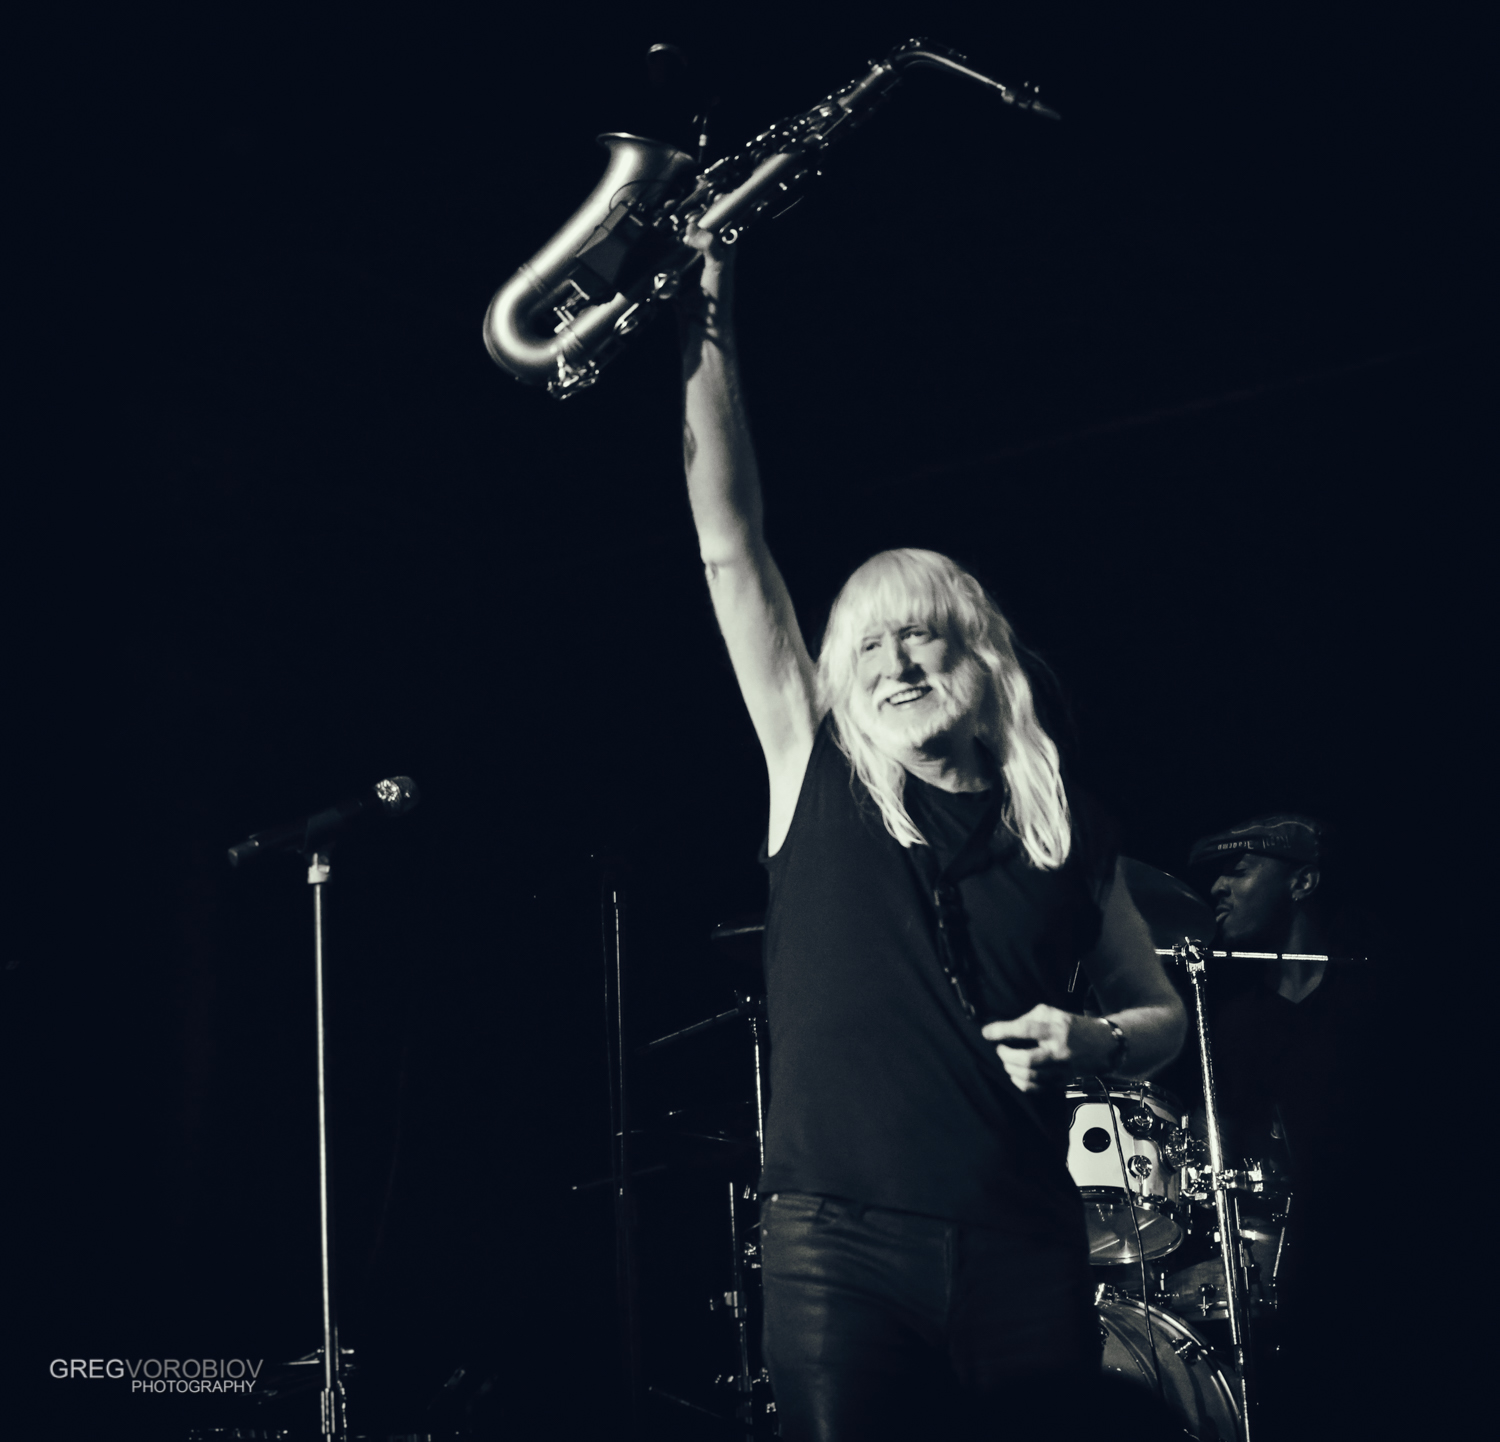 edgar_winter_by_greg_vorobiov-1-3.jpg